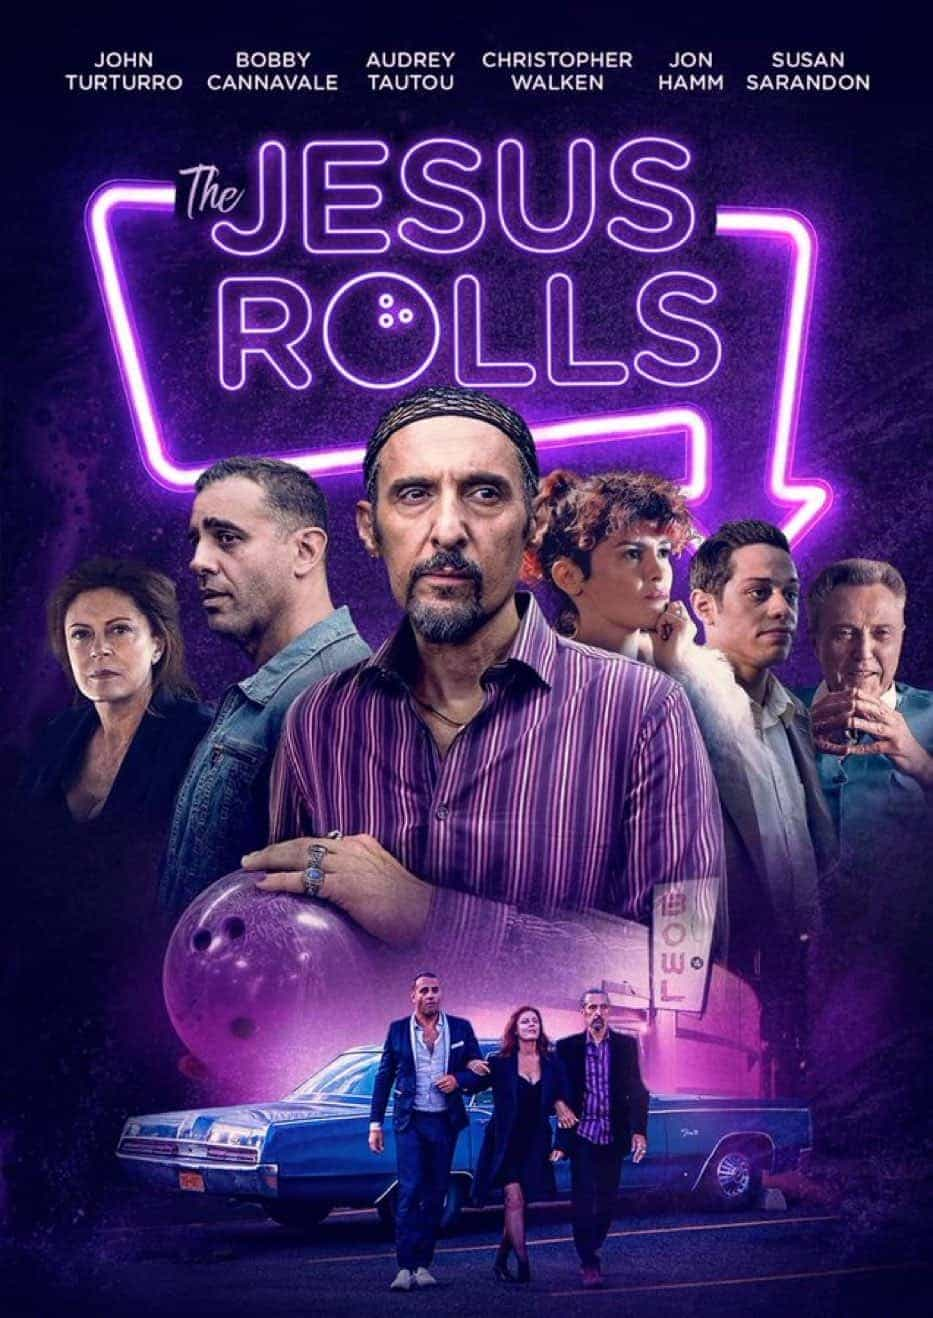 UK box office preview for weekend Friday, 20th March 2020 - The Jesus Rolls and Radioactive